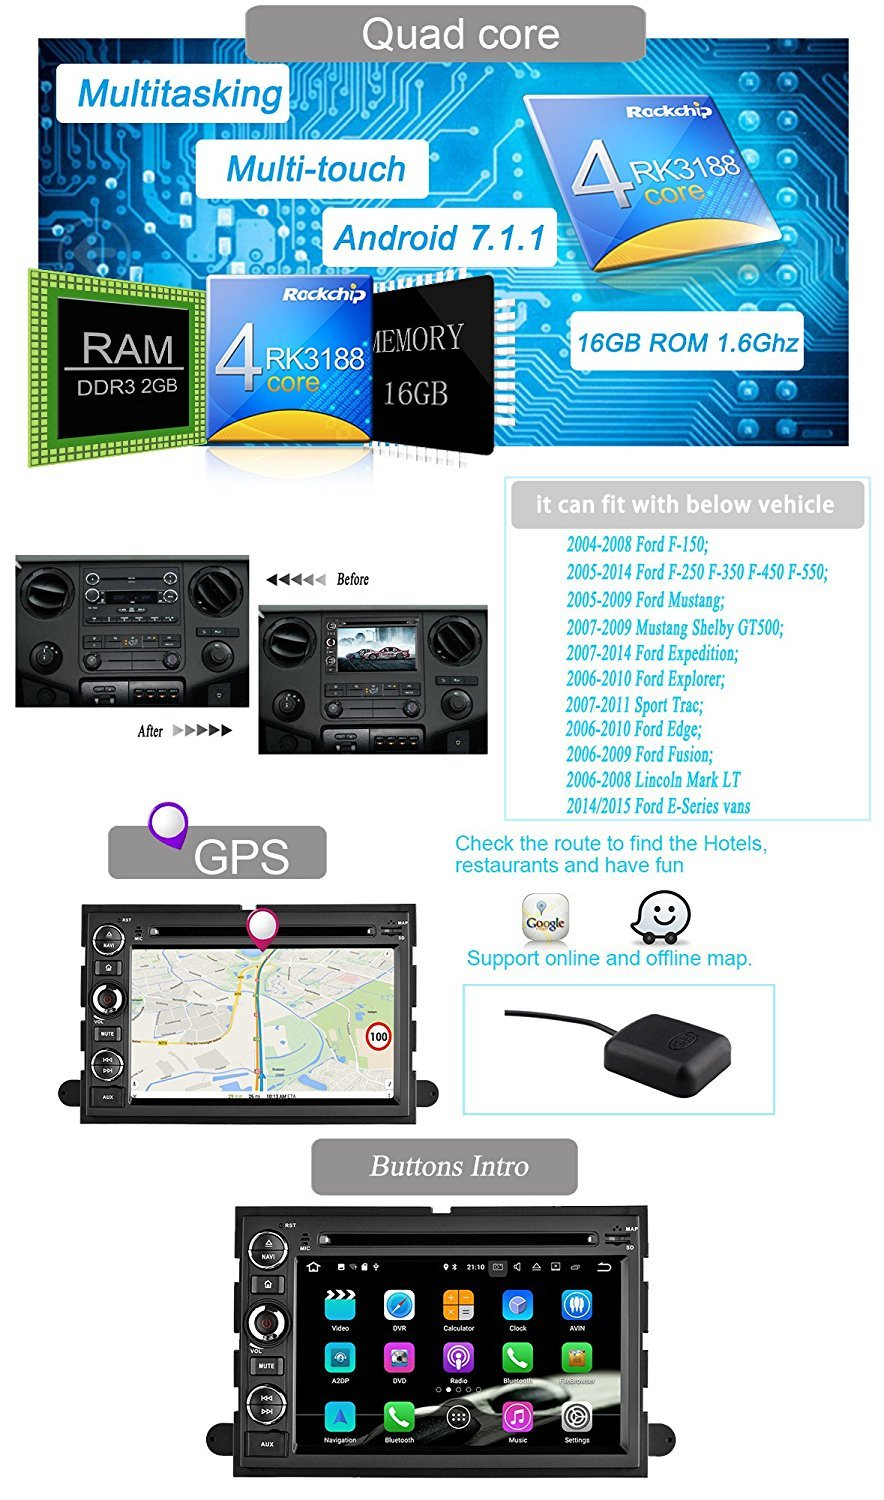 Yinuo Quad Core 16gb 7 Inch Android 71 Double Din Car Fotos 2006 Ford F 150 Lincoln Mark Lt Wiring Diagram Manual Original Dvd Player In Dash Gps Navigation For F150 2004 2008 Fusion 2009 Explorer Edge 2007 Expedition